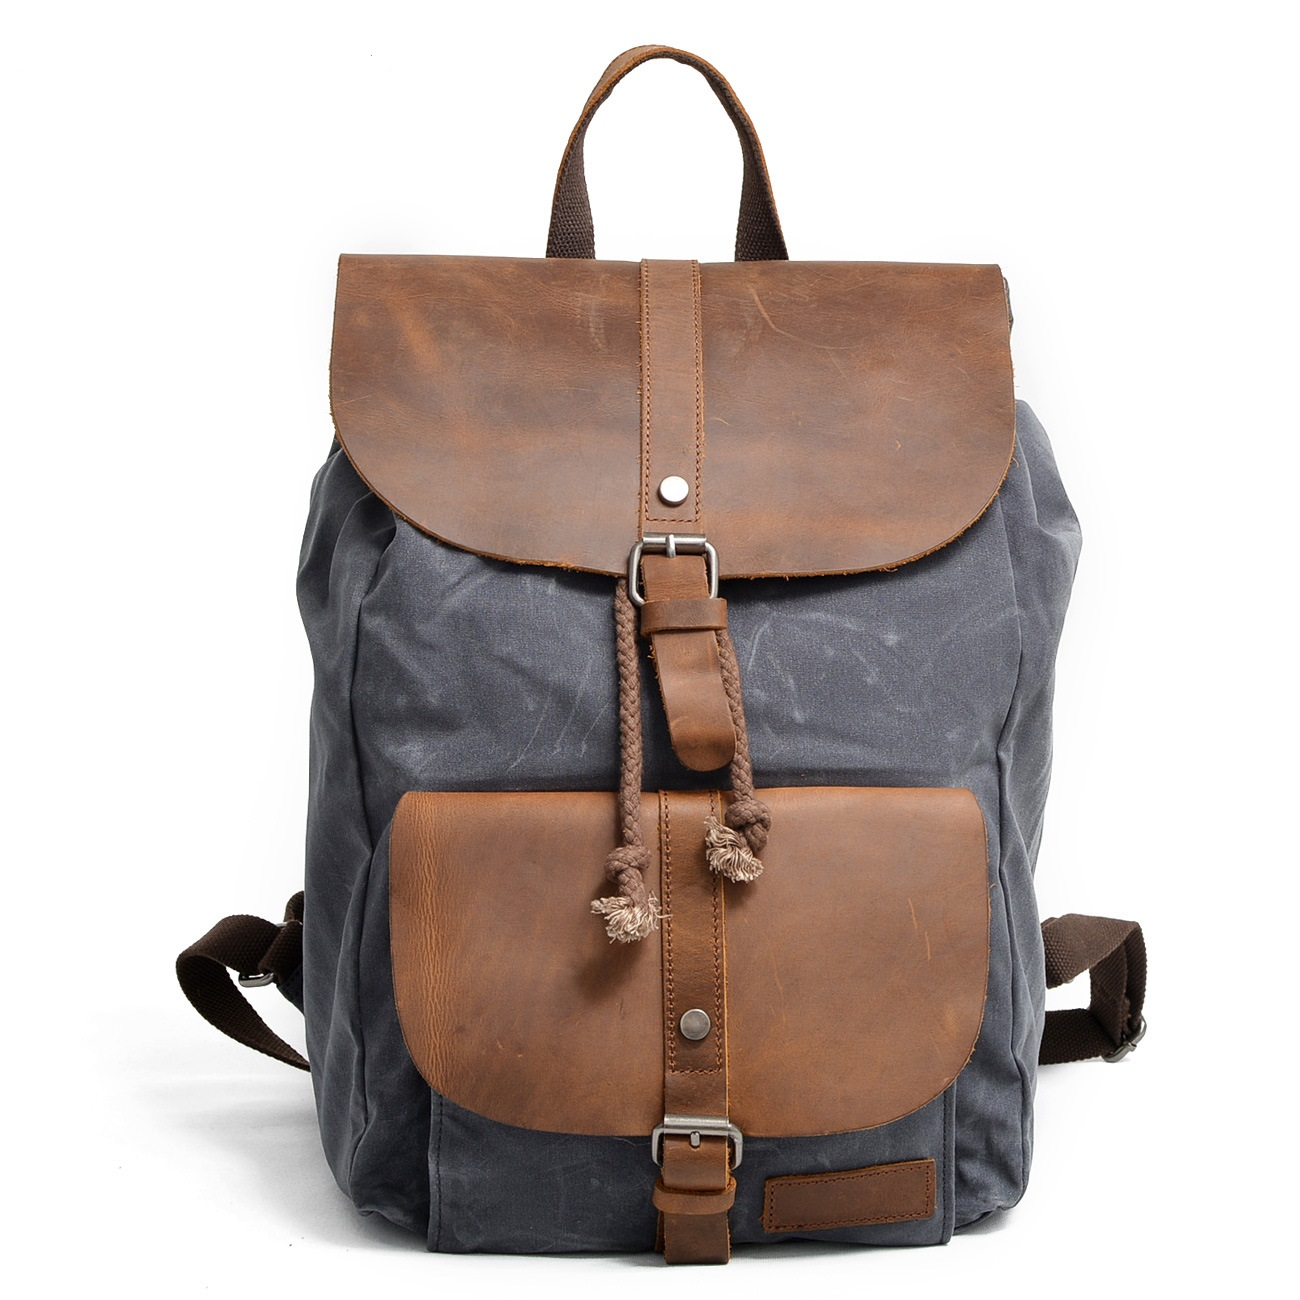 82064K New Fashion Wax Nylon Man Backpack Waterproof Leisure Crazy horse Leather Backpack